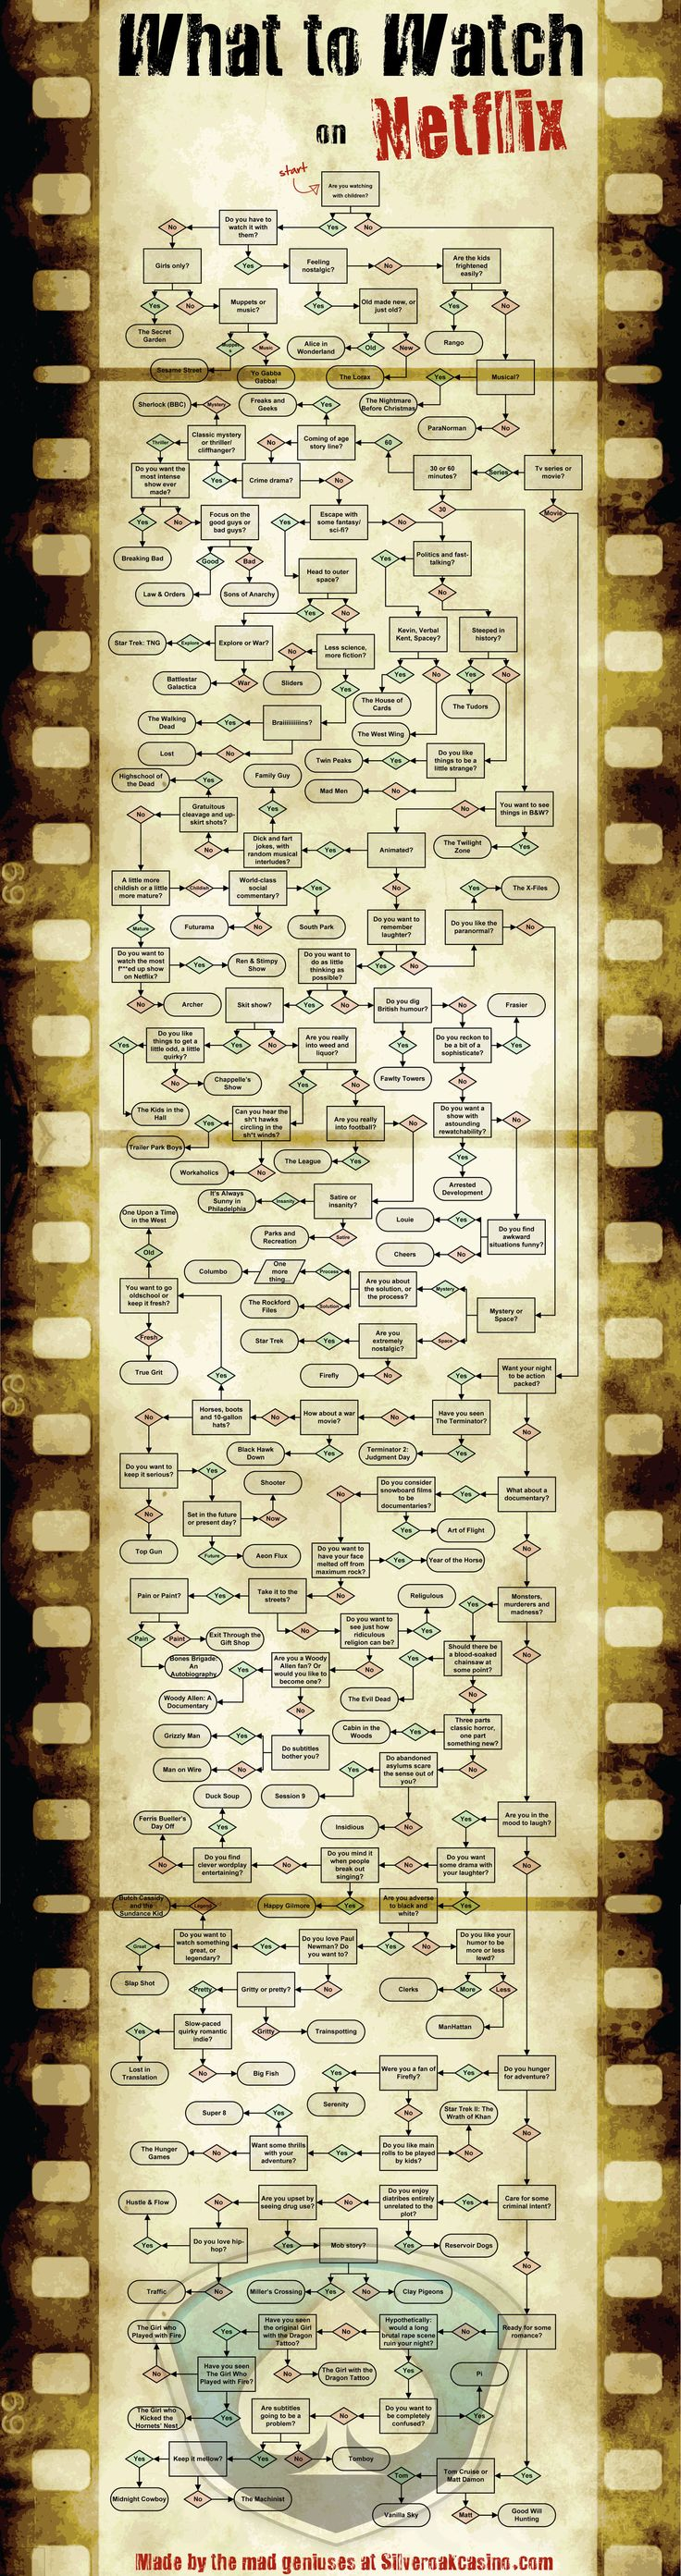 What to Watch on Netflix | Cool Daily Infographics